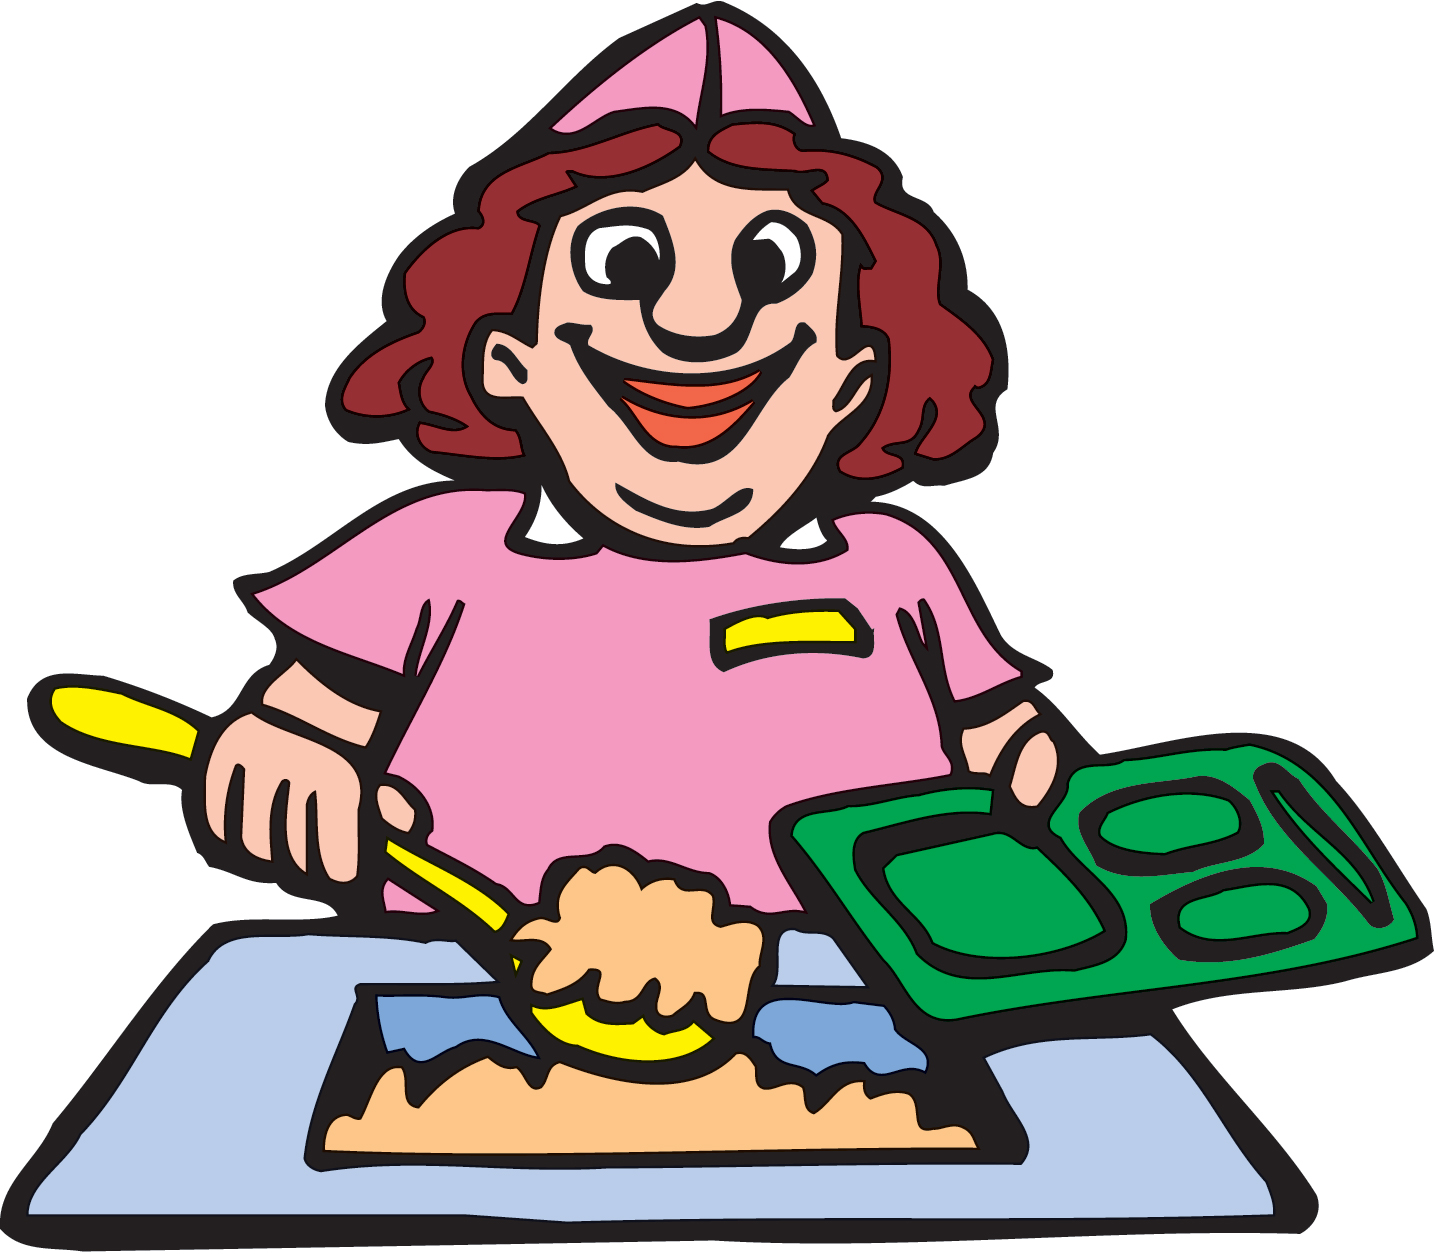 Lunch Lady Clipart | Clipart Panda - Free Clipart Images